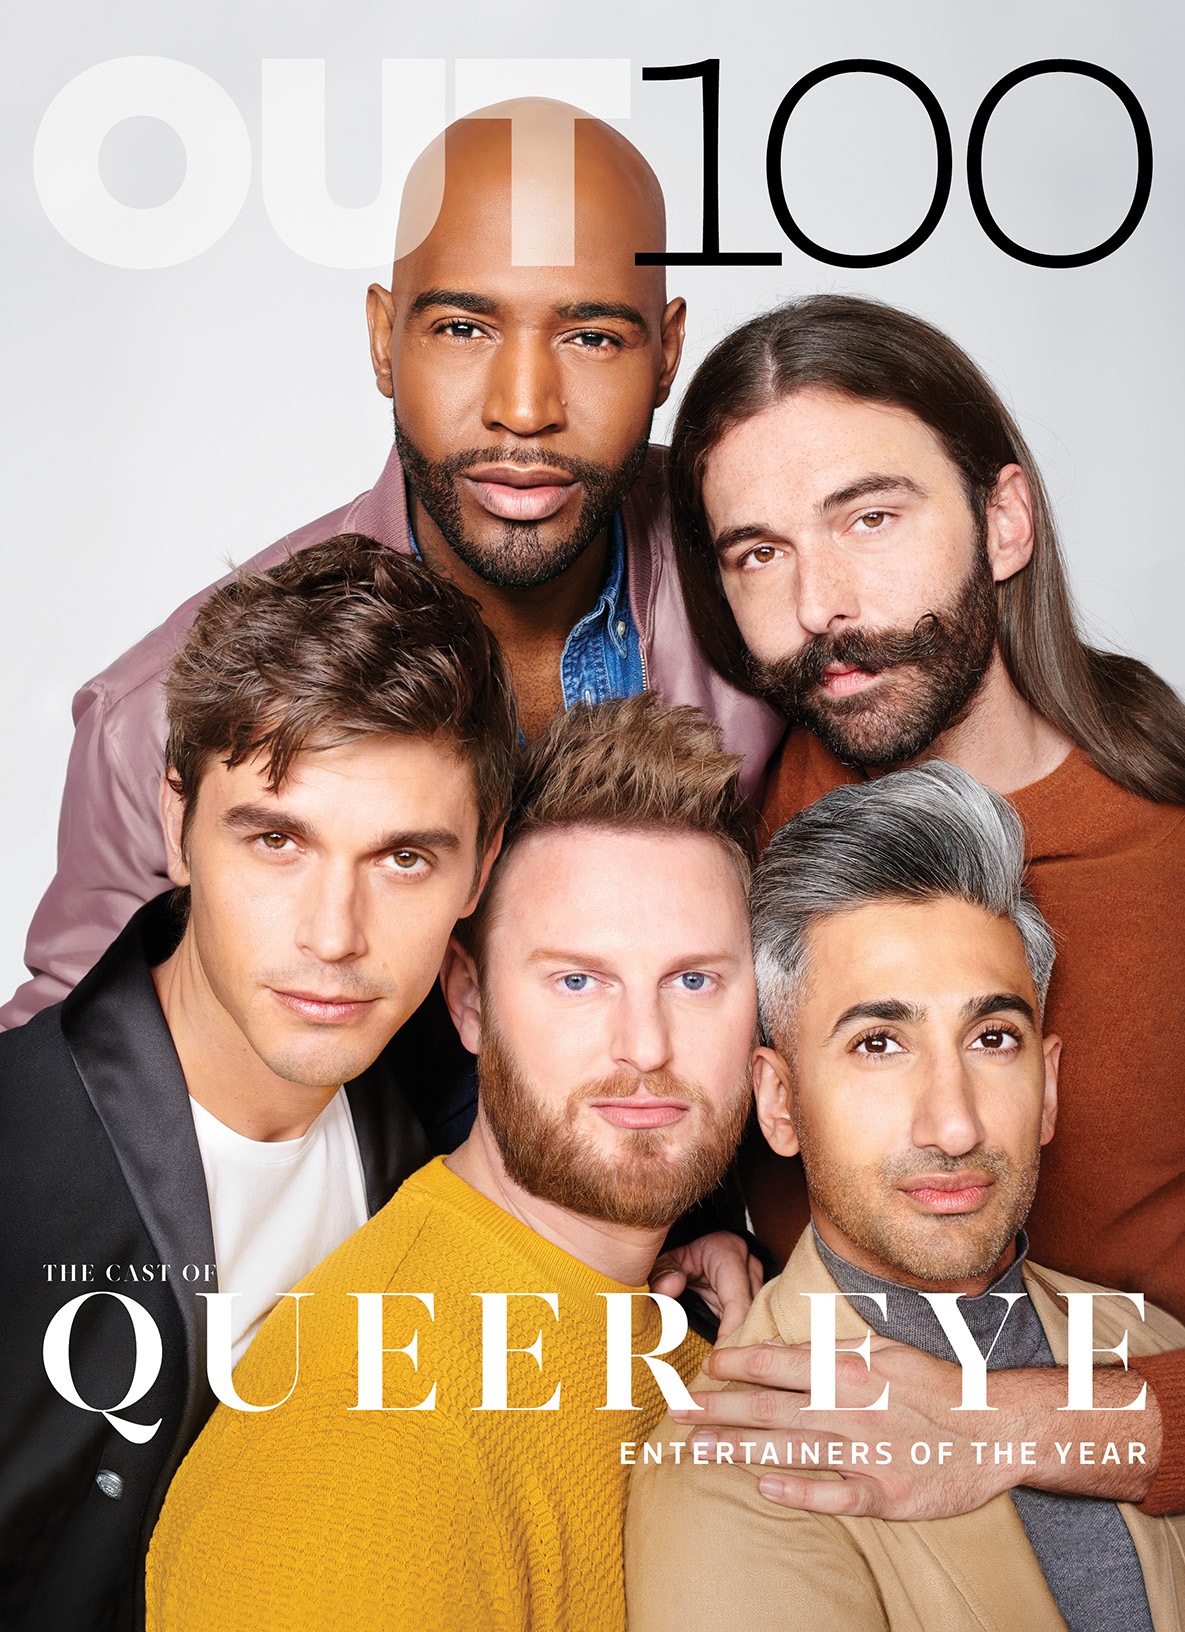 OUT Magazine  / Dec '18 - Jan '19 (OUT100) issue . (Cover 4/4. The Cast of  Queer Eye.  Photography by Martin Schoeller)   CLICK THE IMAGE ABOVE TO VIEW THE ENTIRE ISSUE.